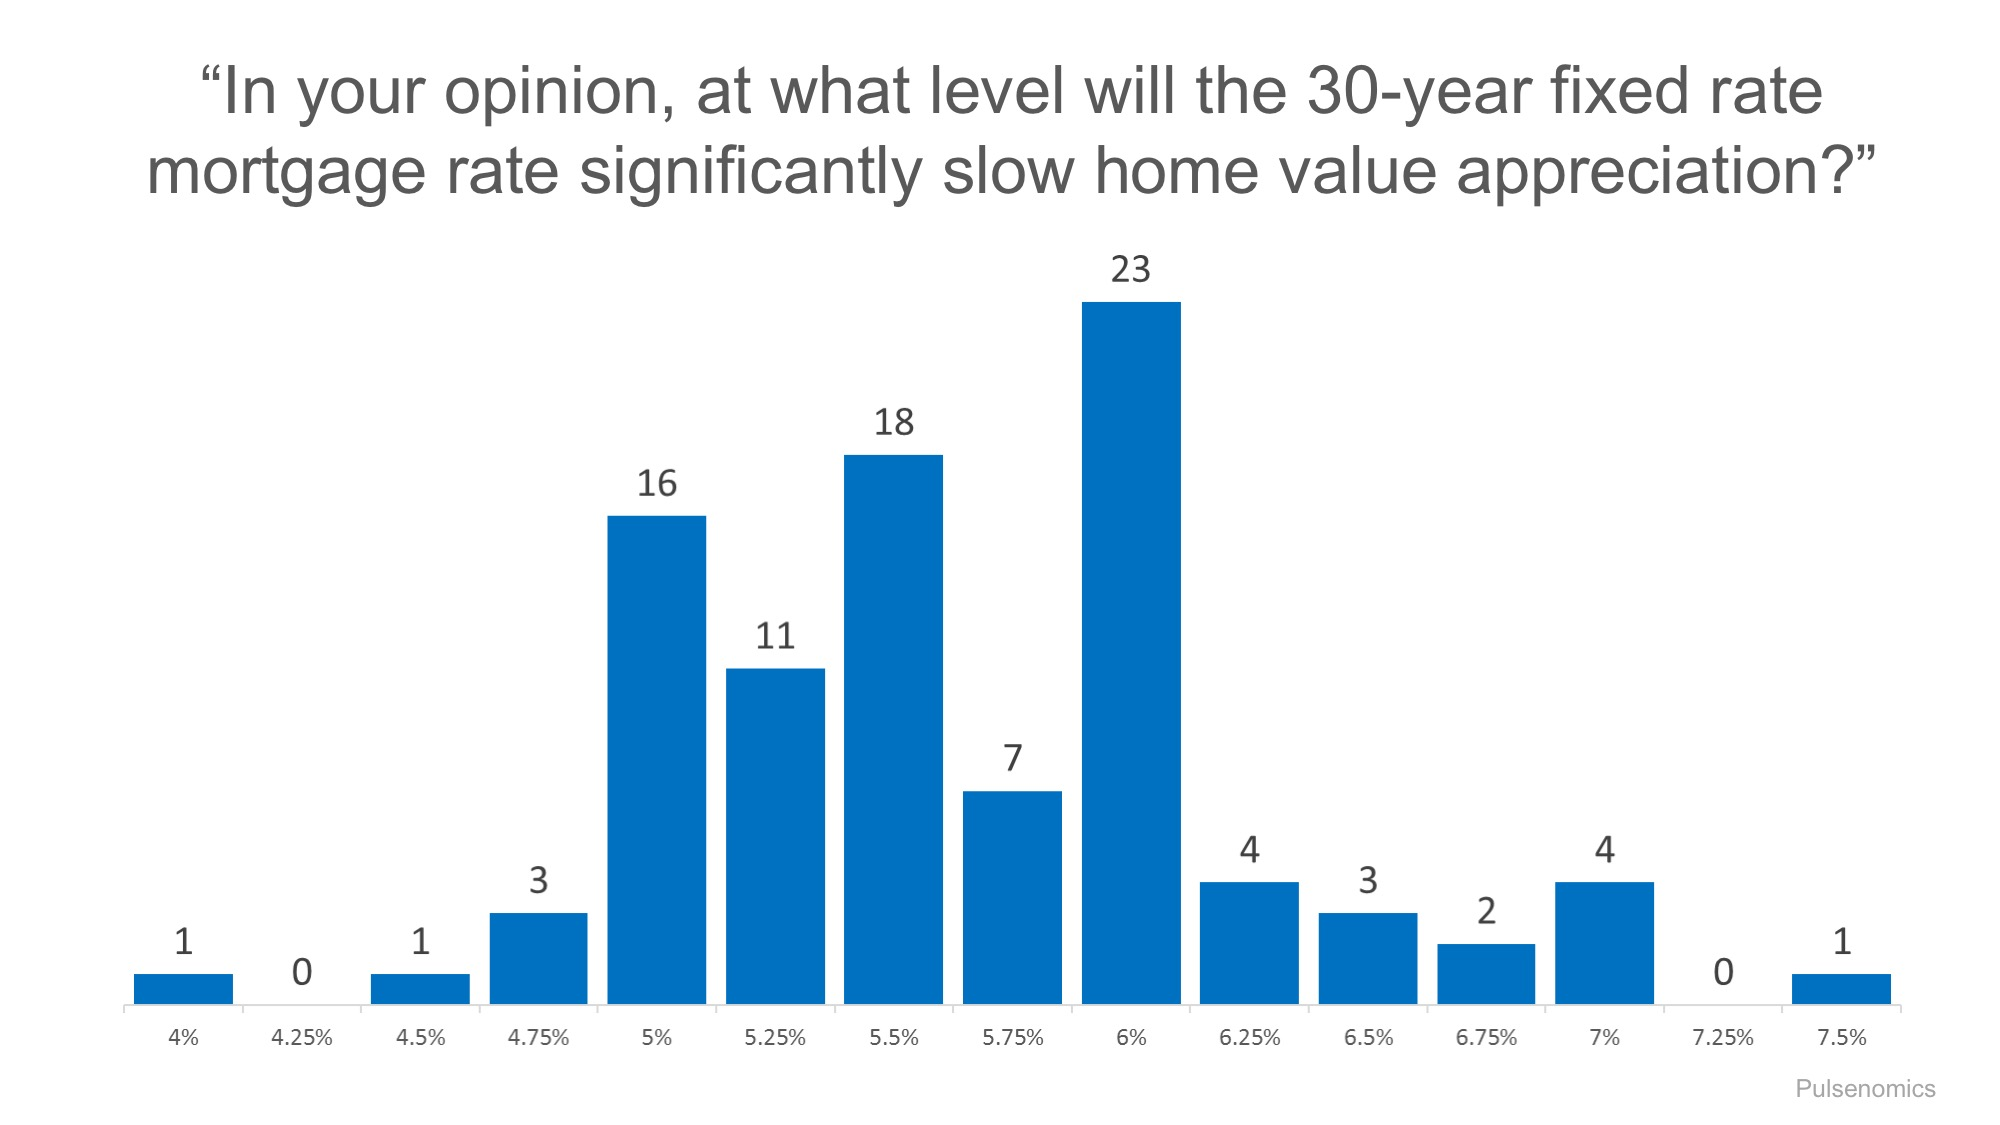 Interest rates affect home value